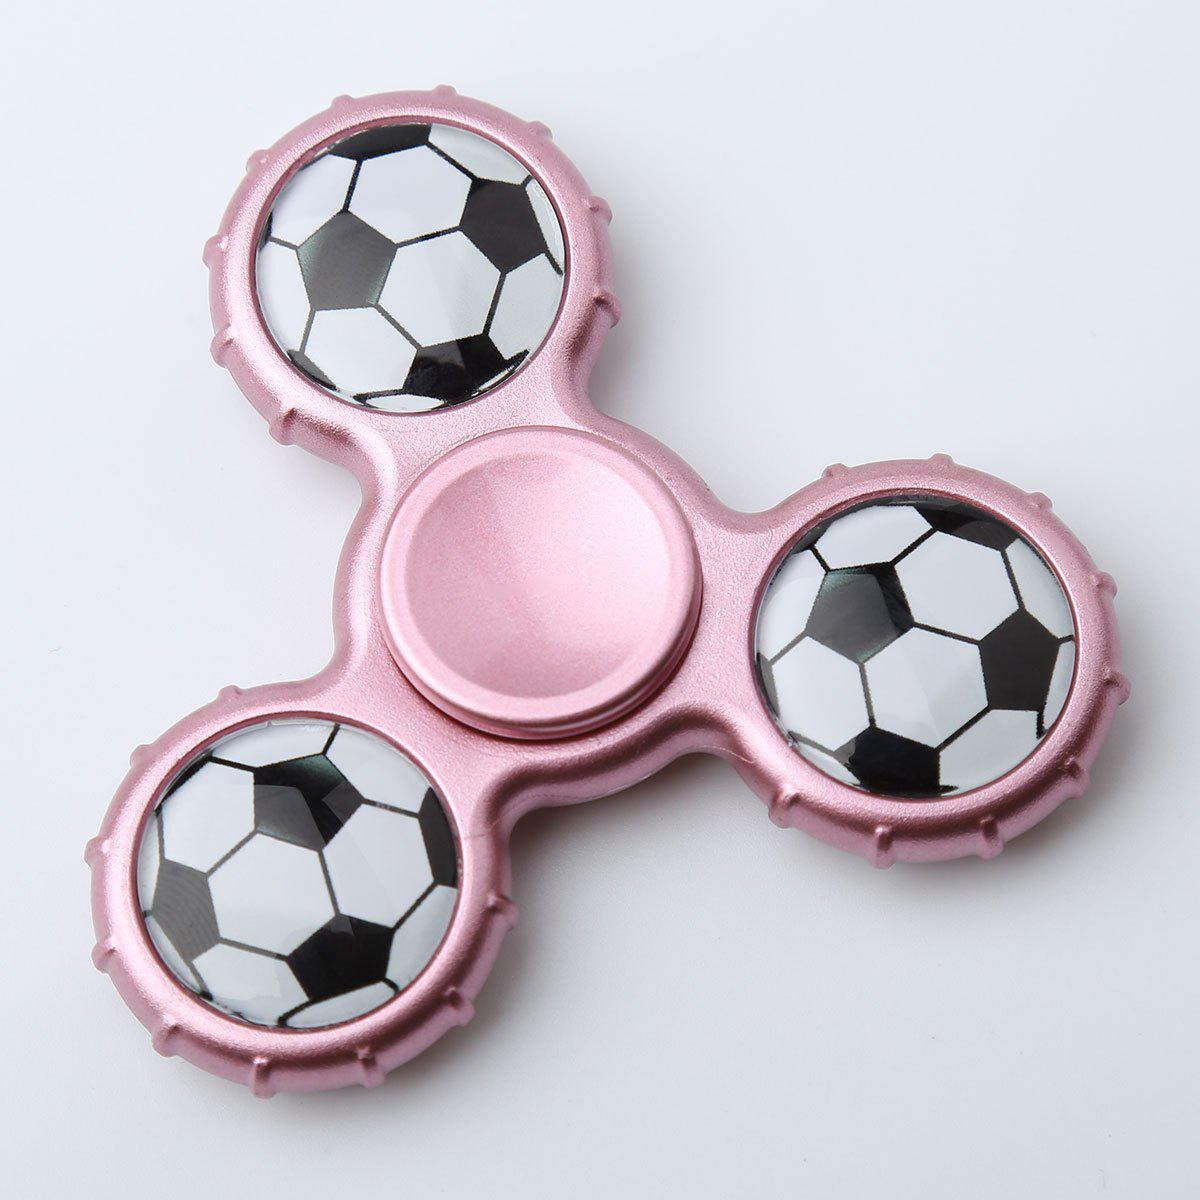 Football Pattern Sport Hand Spinner Fidget Toy - ROSE PÂLE 8*8*1.3CM